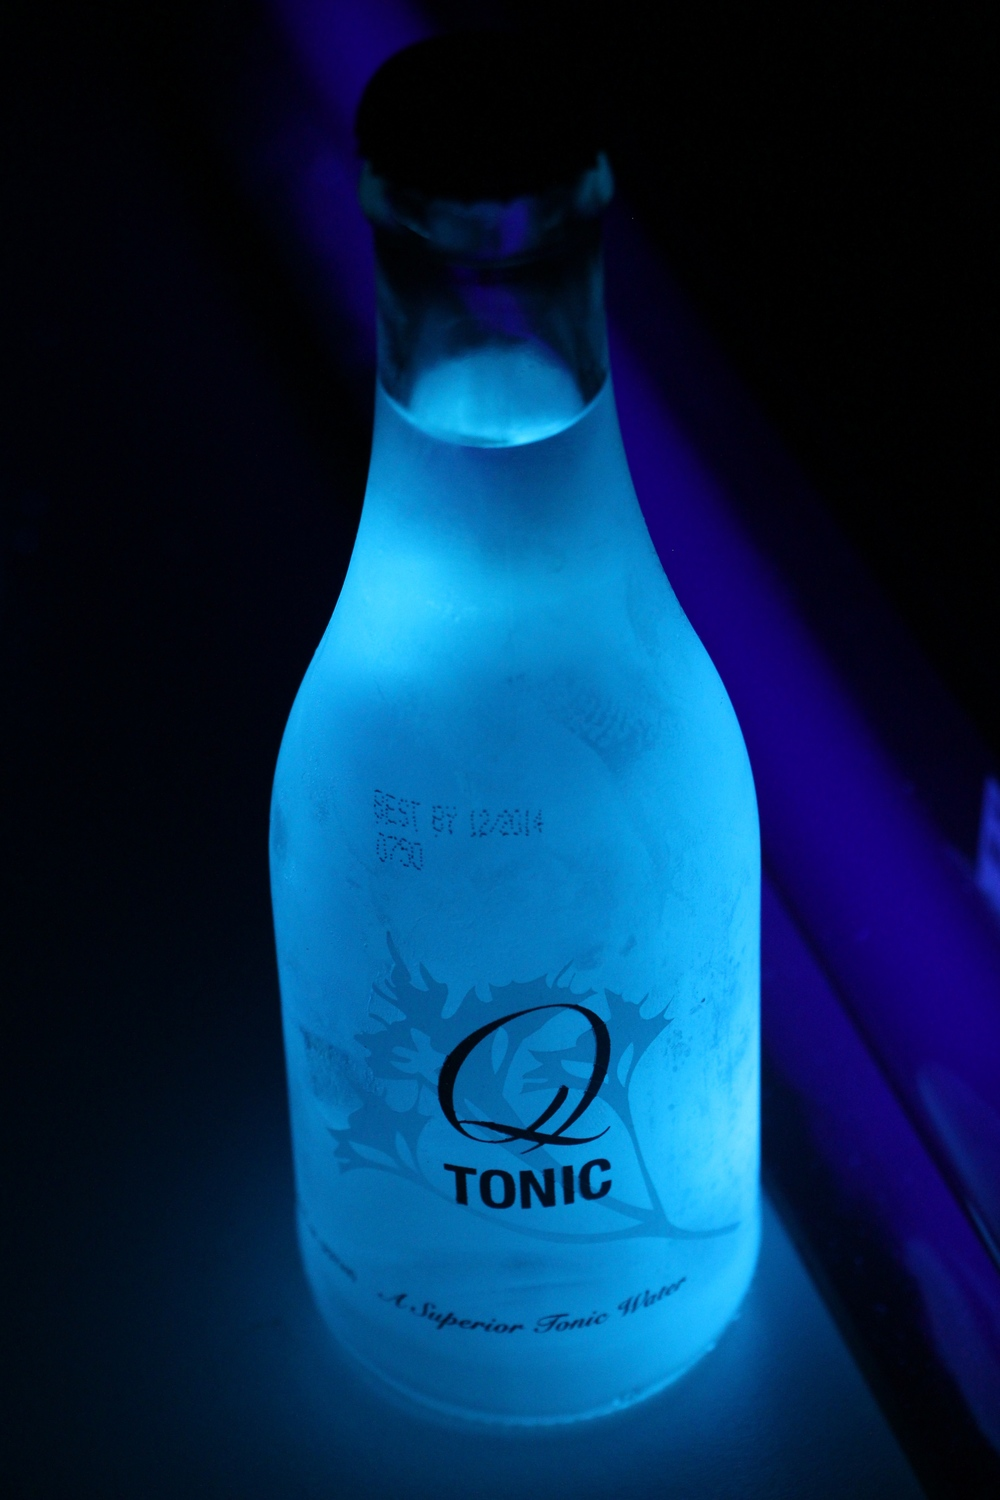 Q Tonic, produit de New York.